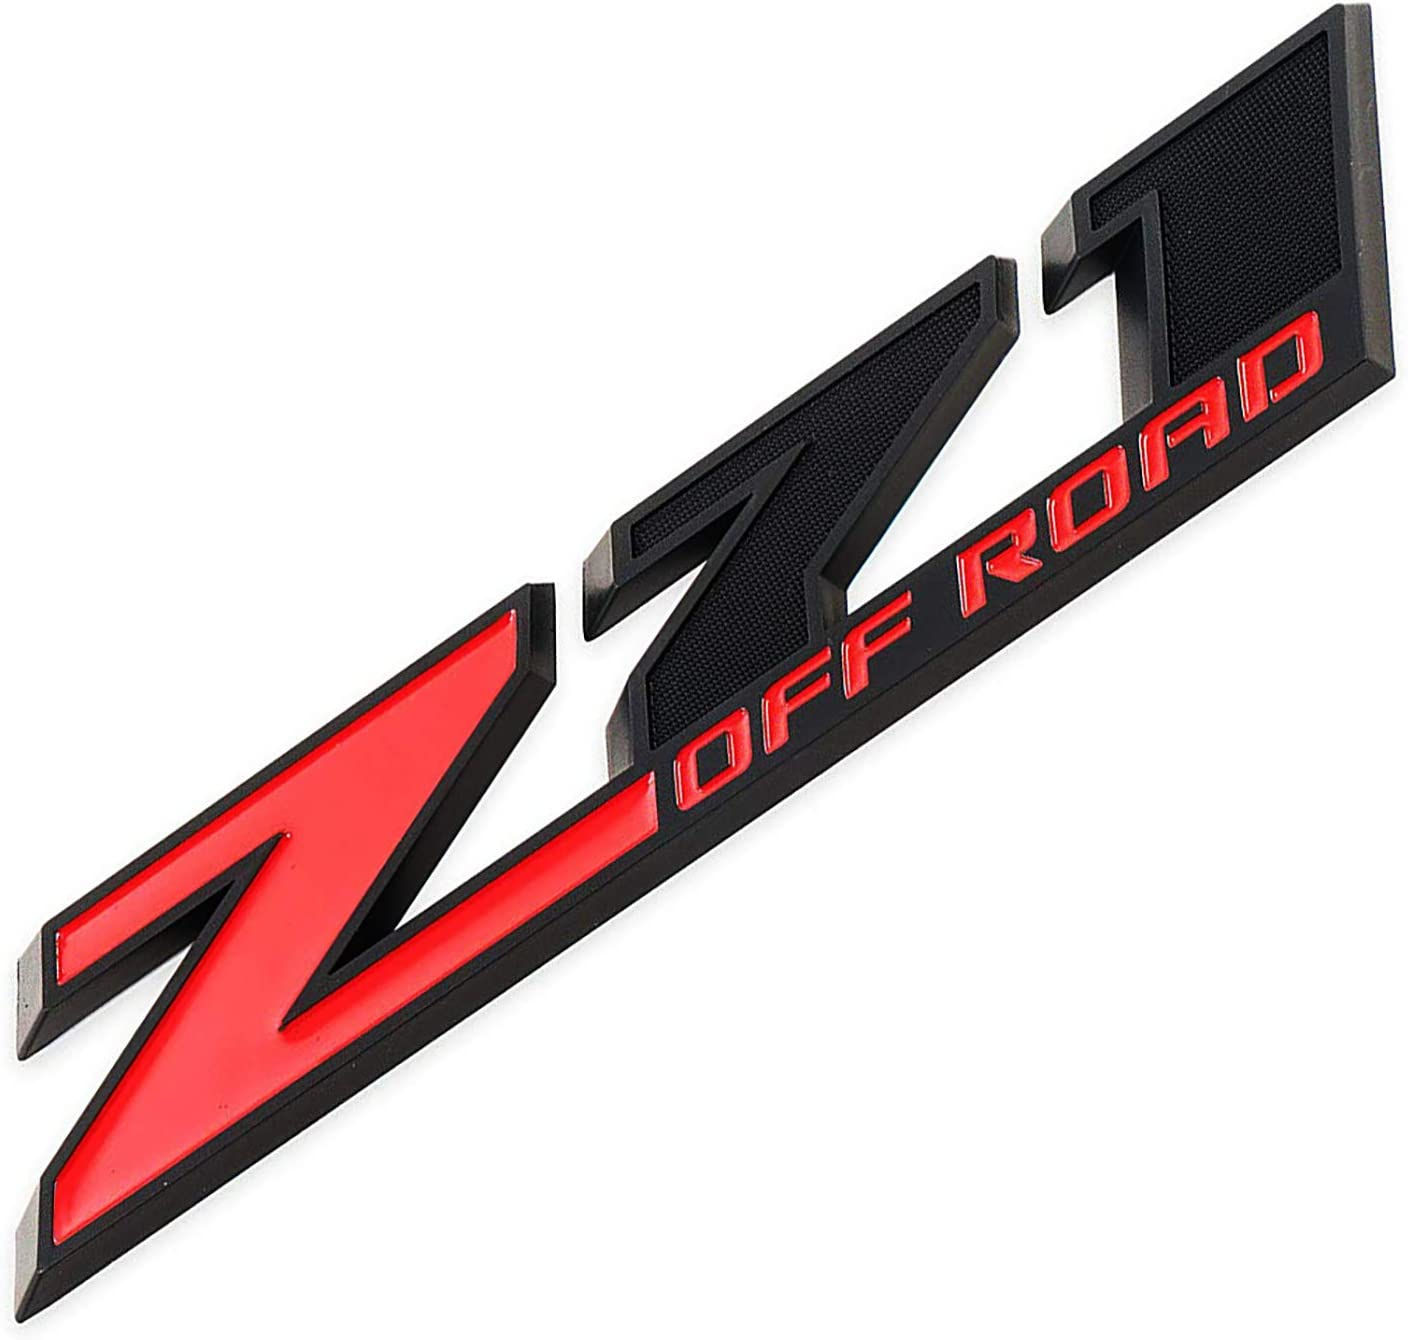 Z71 OFF ROAD Emblem 3D Badge Nameplate Compatible for Chevy Silverado Colorado Suburban Sierra Tahoe 1Pc Big Size 10.3 INCH Red Black